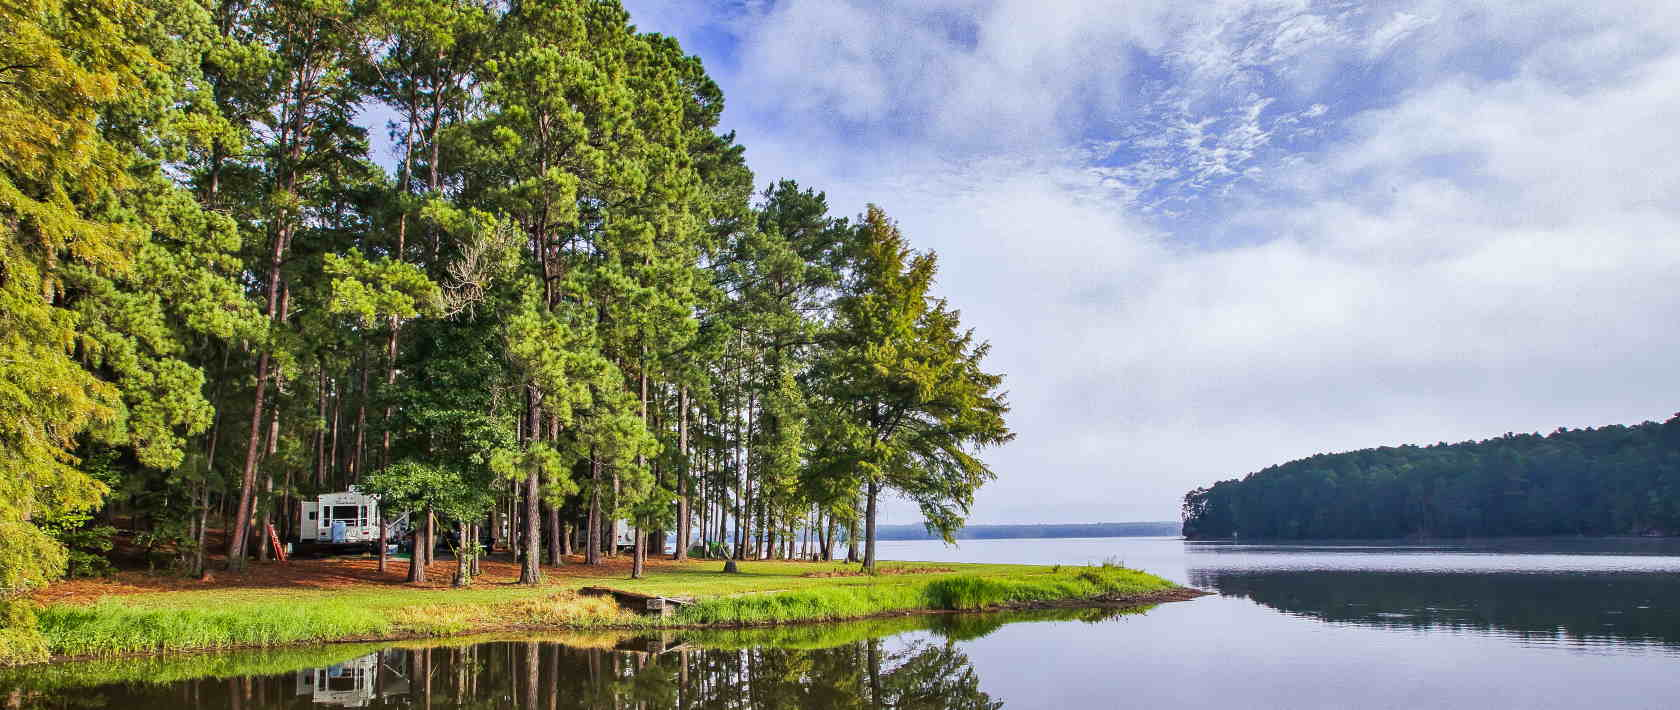 RV spots along the lake at Lake Claiborne State Park